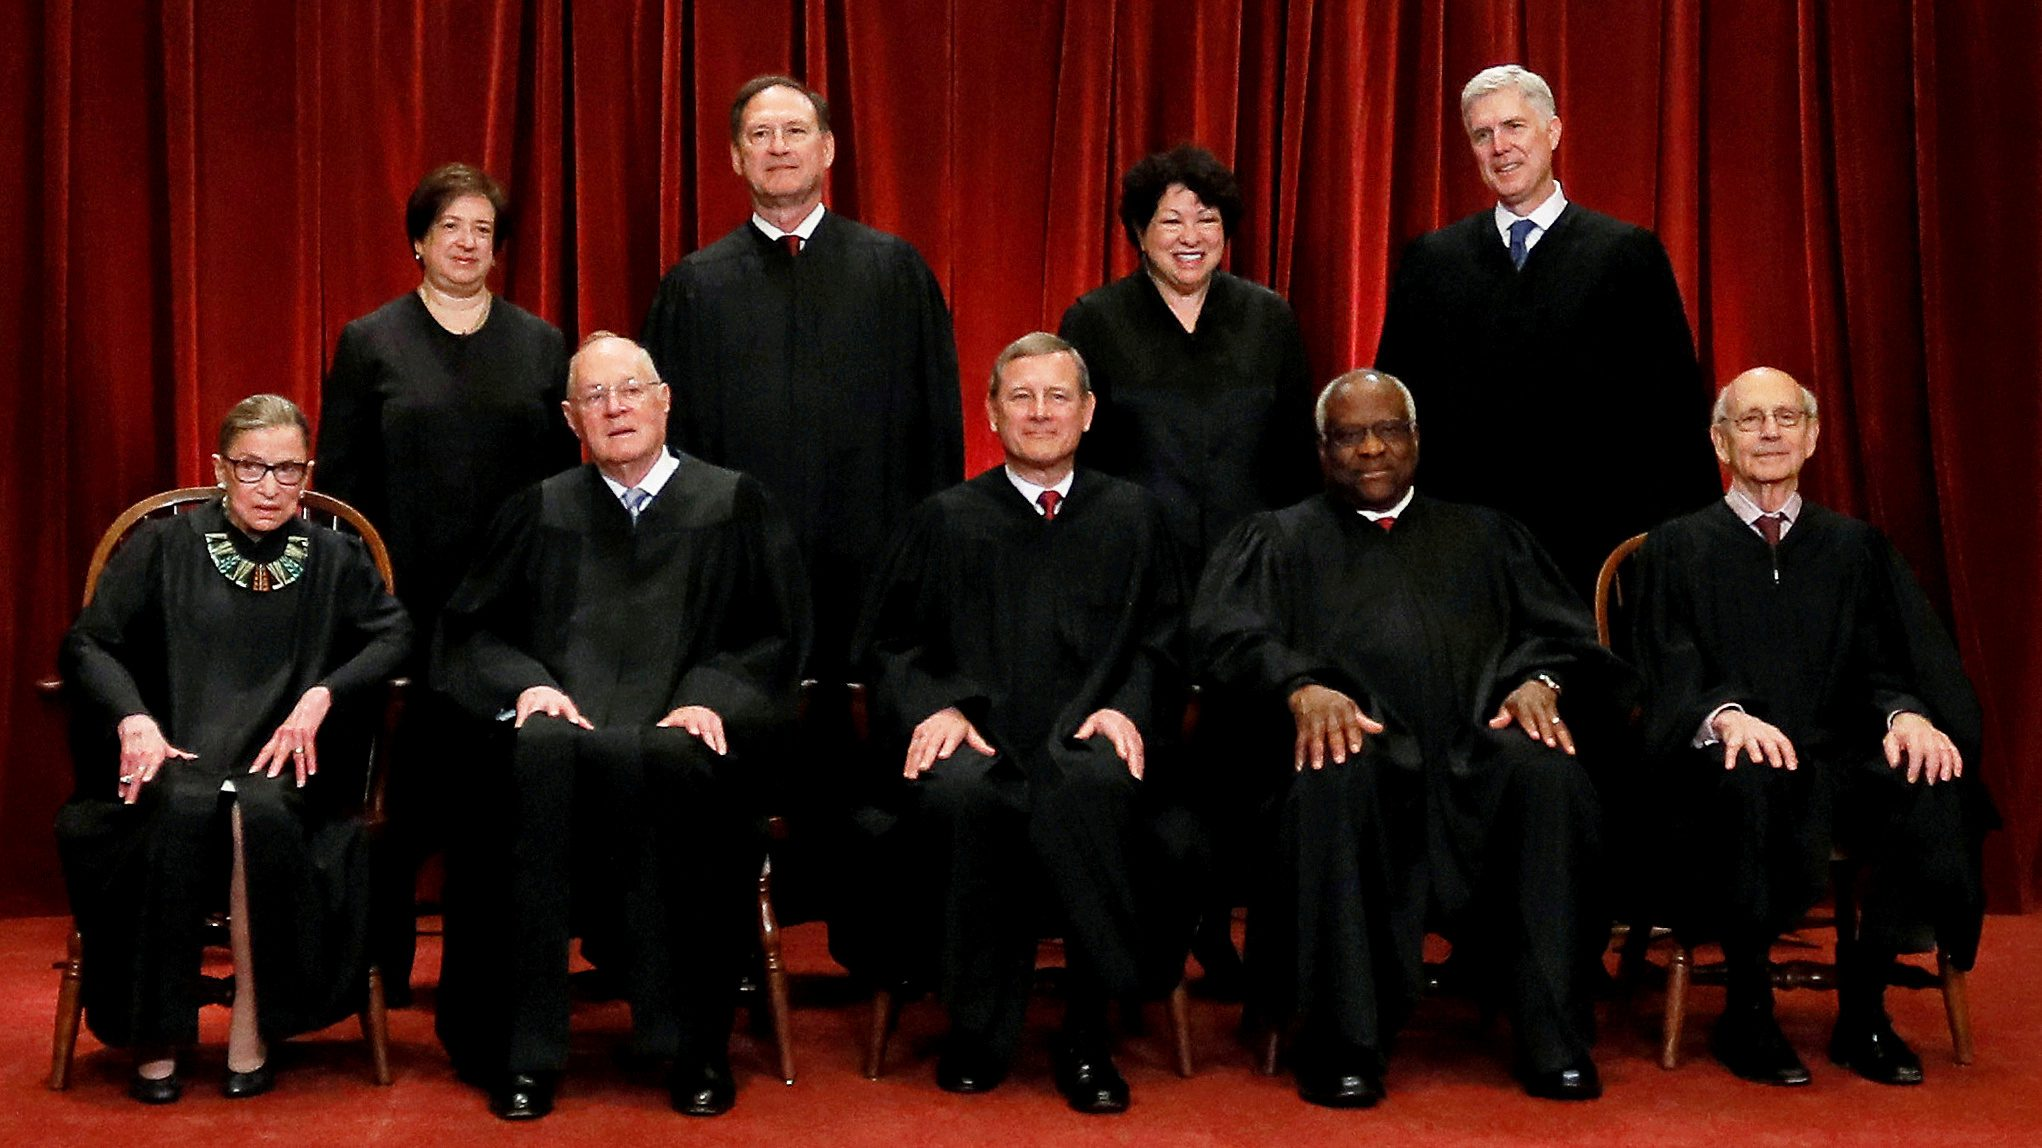 FILE PHOTO: U.S. Chief Justice John Roberts (seated C) leads Justice Ruth Bader Ginsburg (front row, L-R), Justice Anthony Kennedy, Justice Clarence Thomas, Justice Stephen Breyer, Justice Elena Kagan (back row, L-R), Justice Samuel Alito, Justice Sonia Sotomayor, and Associate Justice Neil Gorsuch in taking a new family photo including Gorsuch, their most recent addition, at the Supreme Court building in Washington, DC, U.S. on  June 1, 2017. REUTERS/Jonathan Ernst/File Photo - RC1491C85490